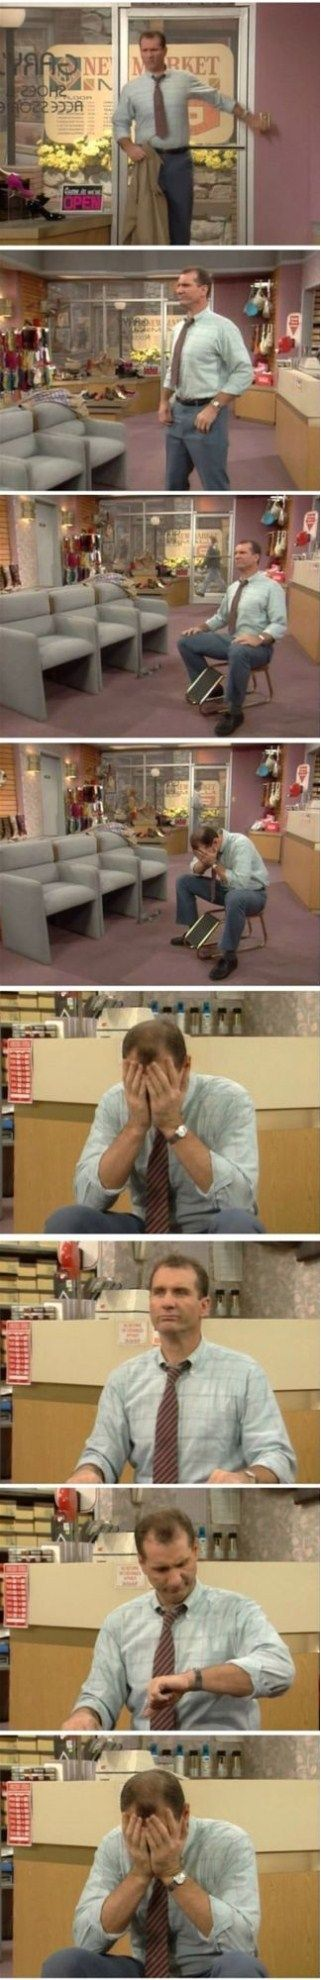 Al Bundy - Typical Day At Work - MEME, LOL and Funny Pictures. Get the BEST and Funniest MEME, Funny Pictures and LOL from the Funny Pictures Blog.